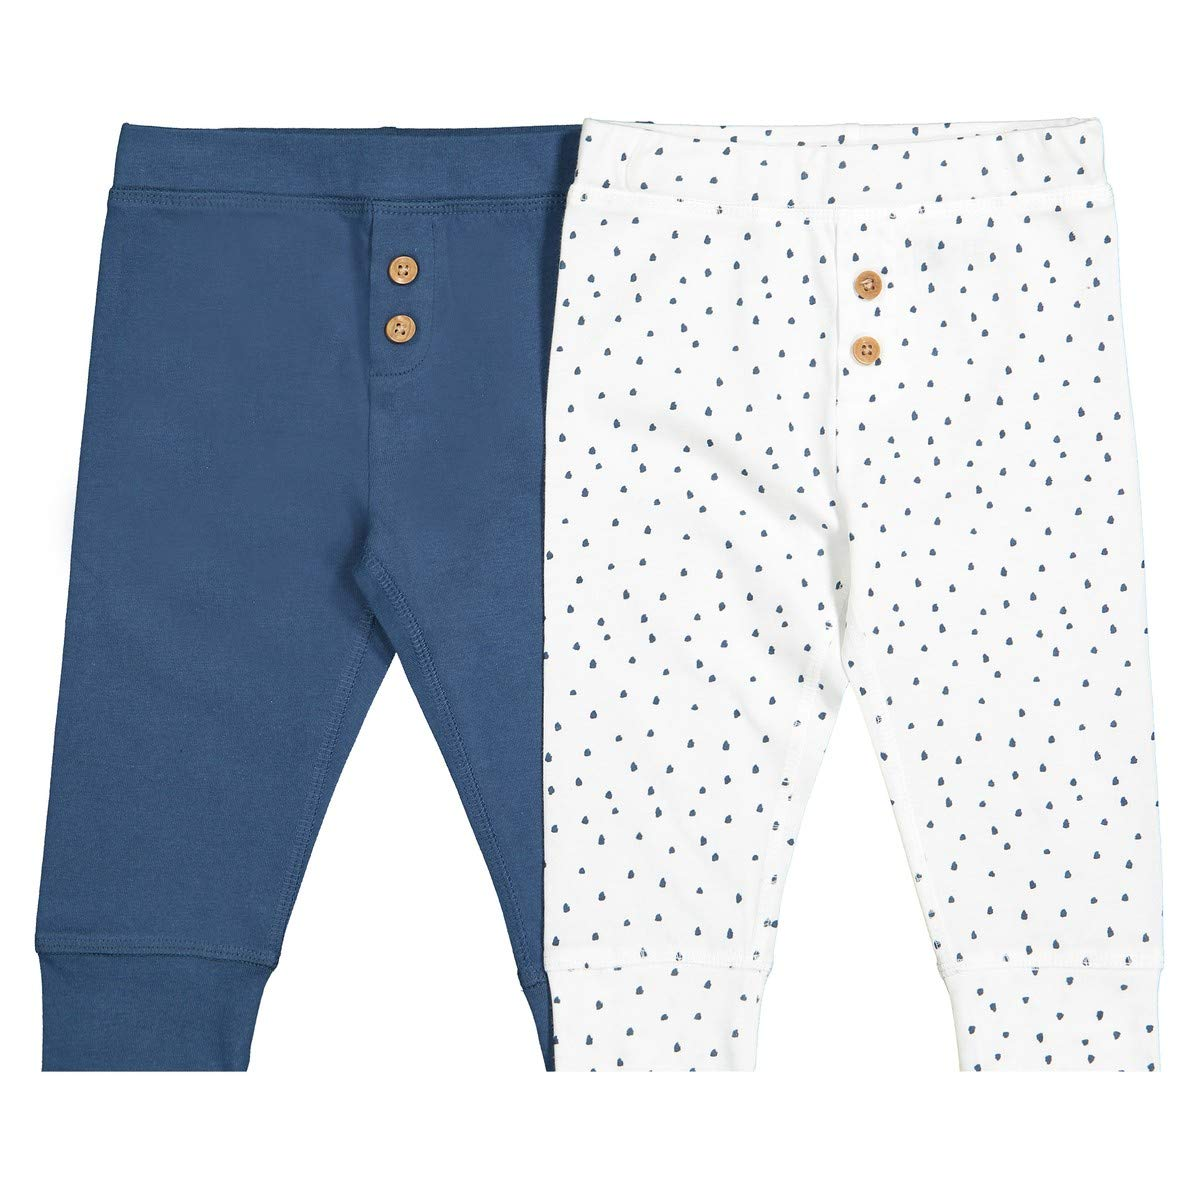 Birth-3 Years La Redoute Collections Pack of 2 Leggings